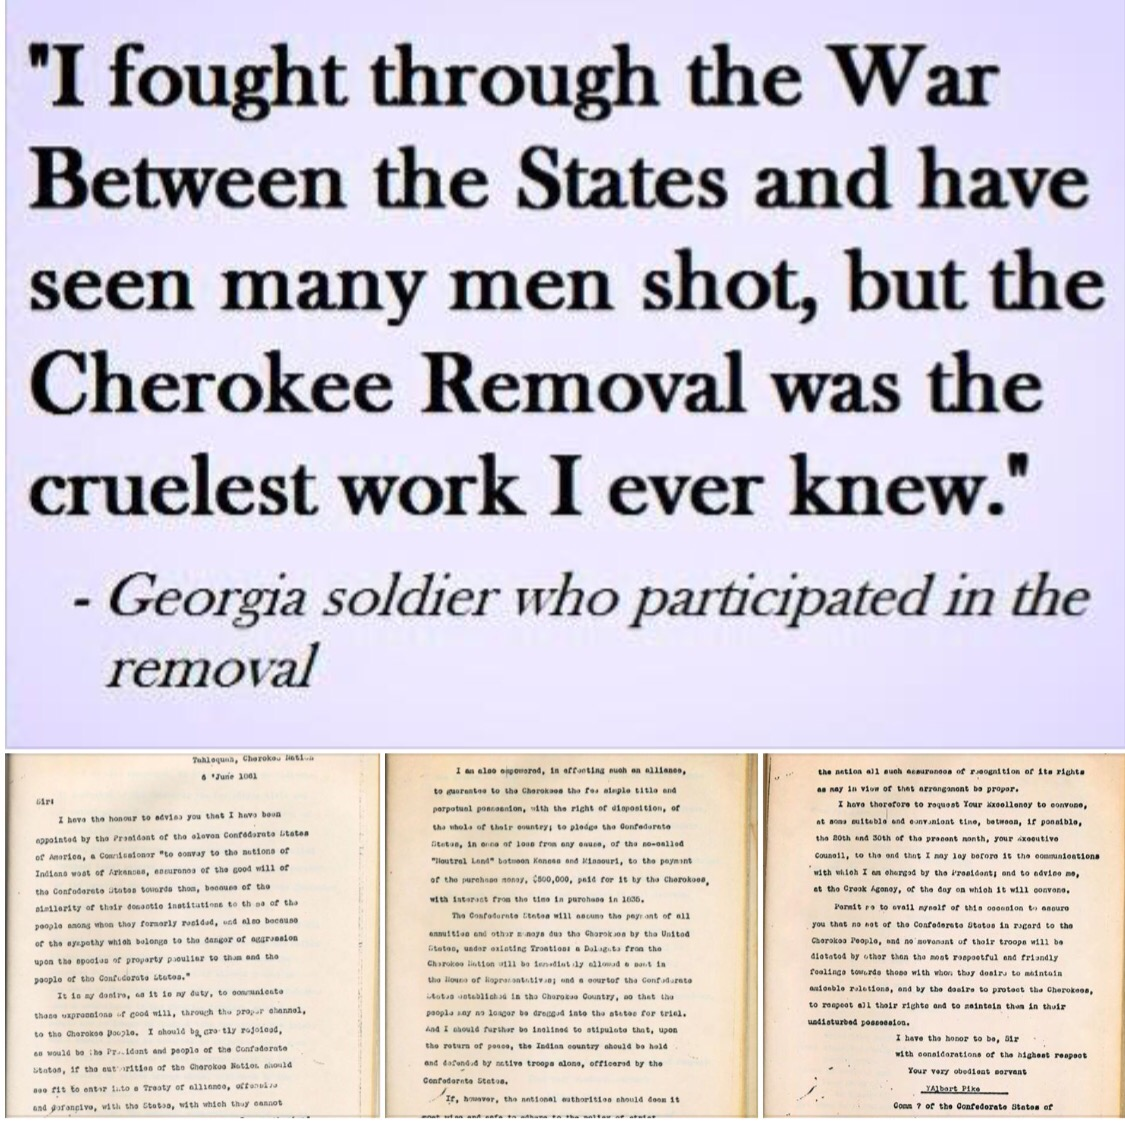 tahlequah june 6 1861 letters from albert pike to principle chief of the cherokee nation john ross these letters were left to me by my mother